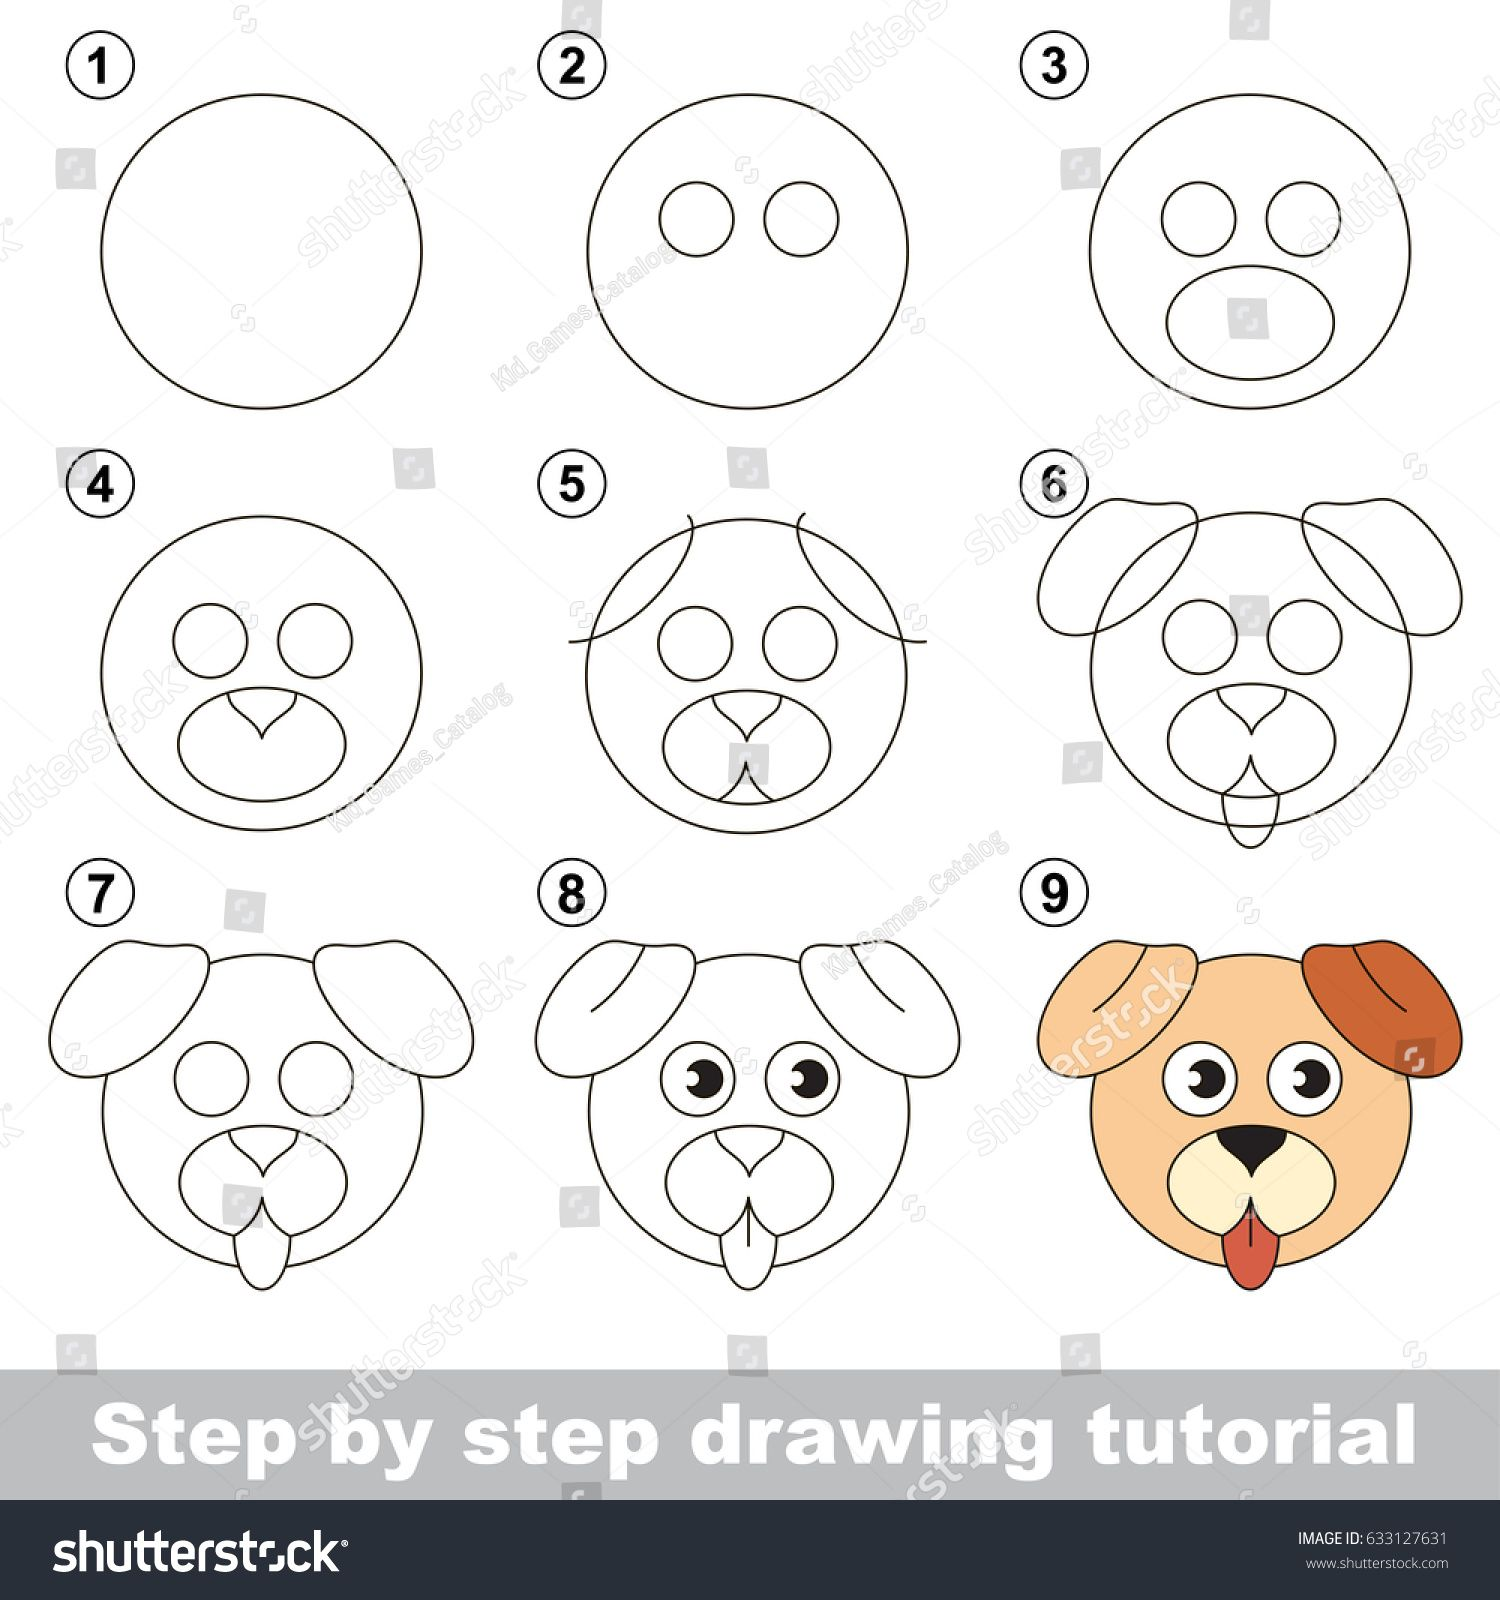 Kid game to develop drawing skill with easy gaming level for preschool kids, drawing educational tutori… | Easy drawings, Easy drawings for kids, Puppy drawing easy